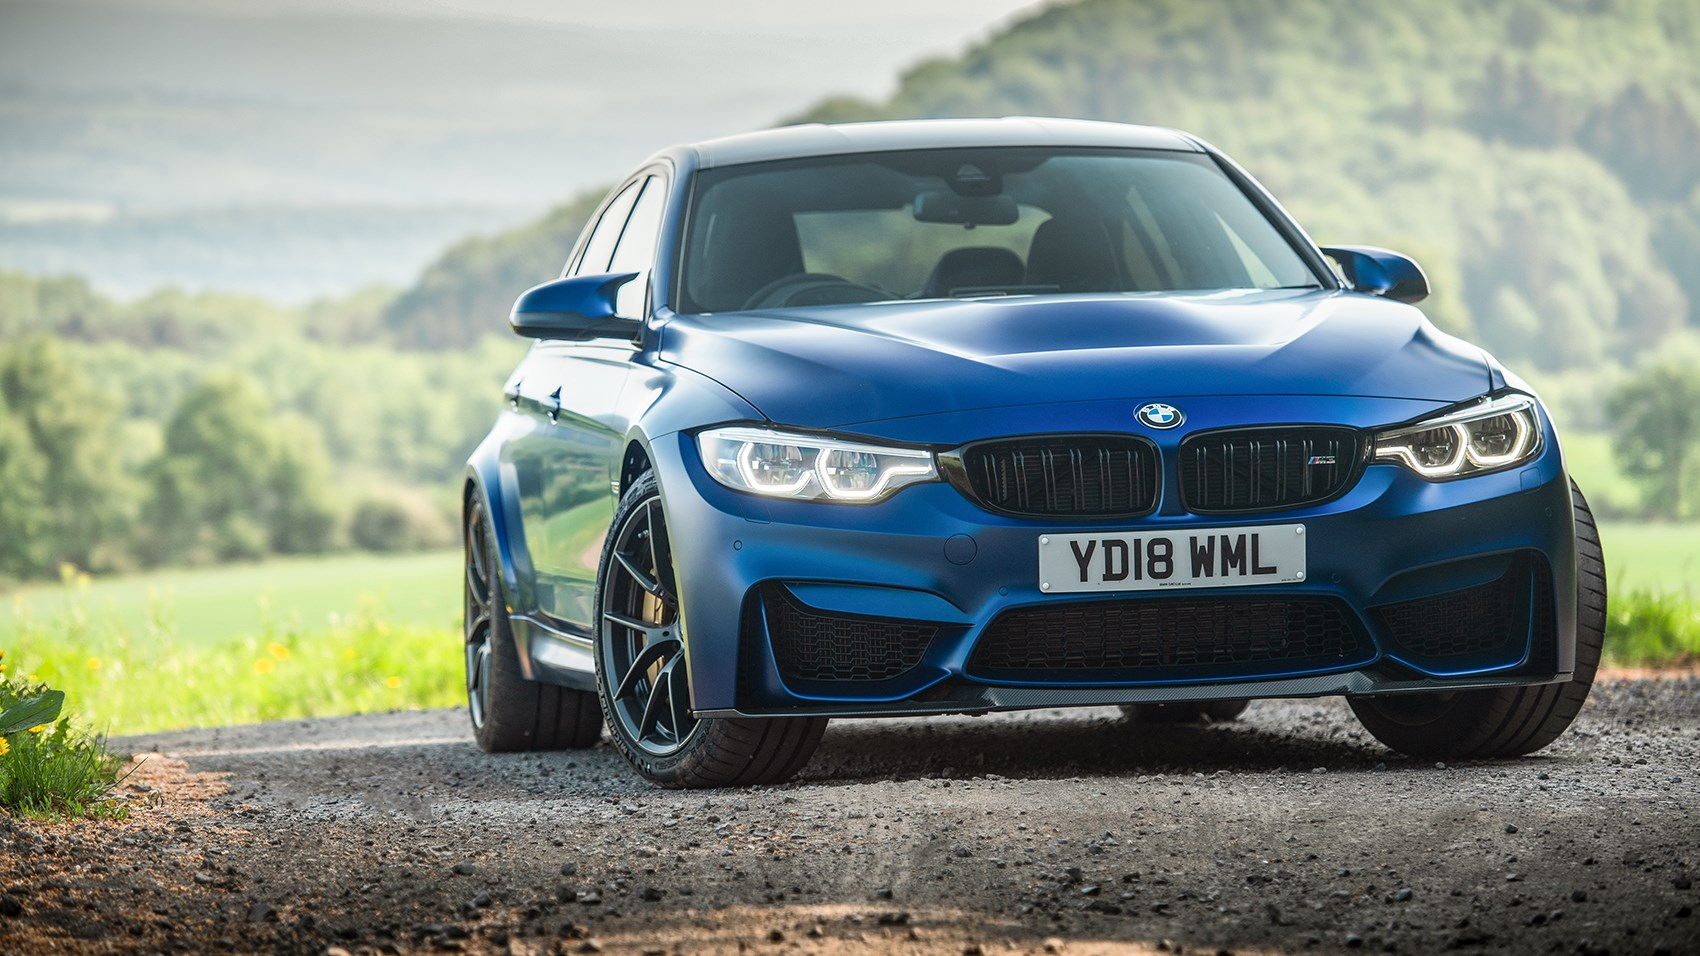 BMW M3 CS (2018) Review: The Best F80 M3 Yet